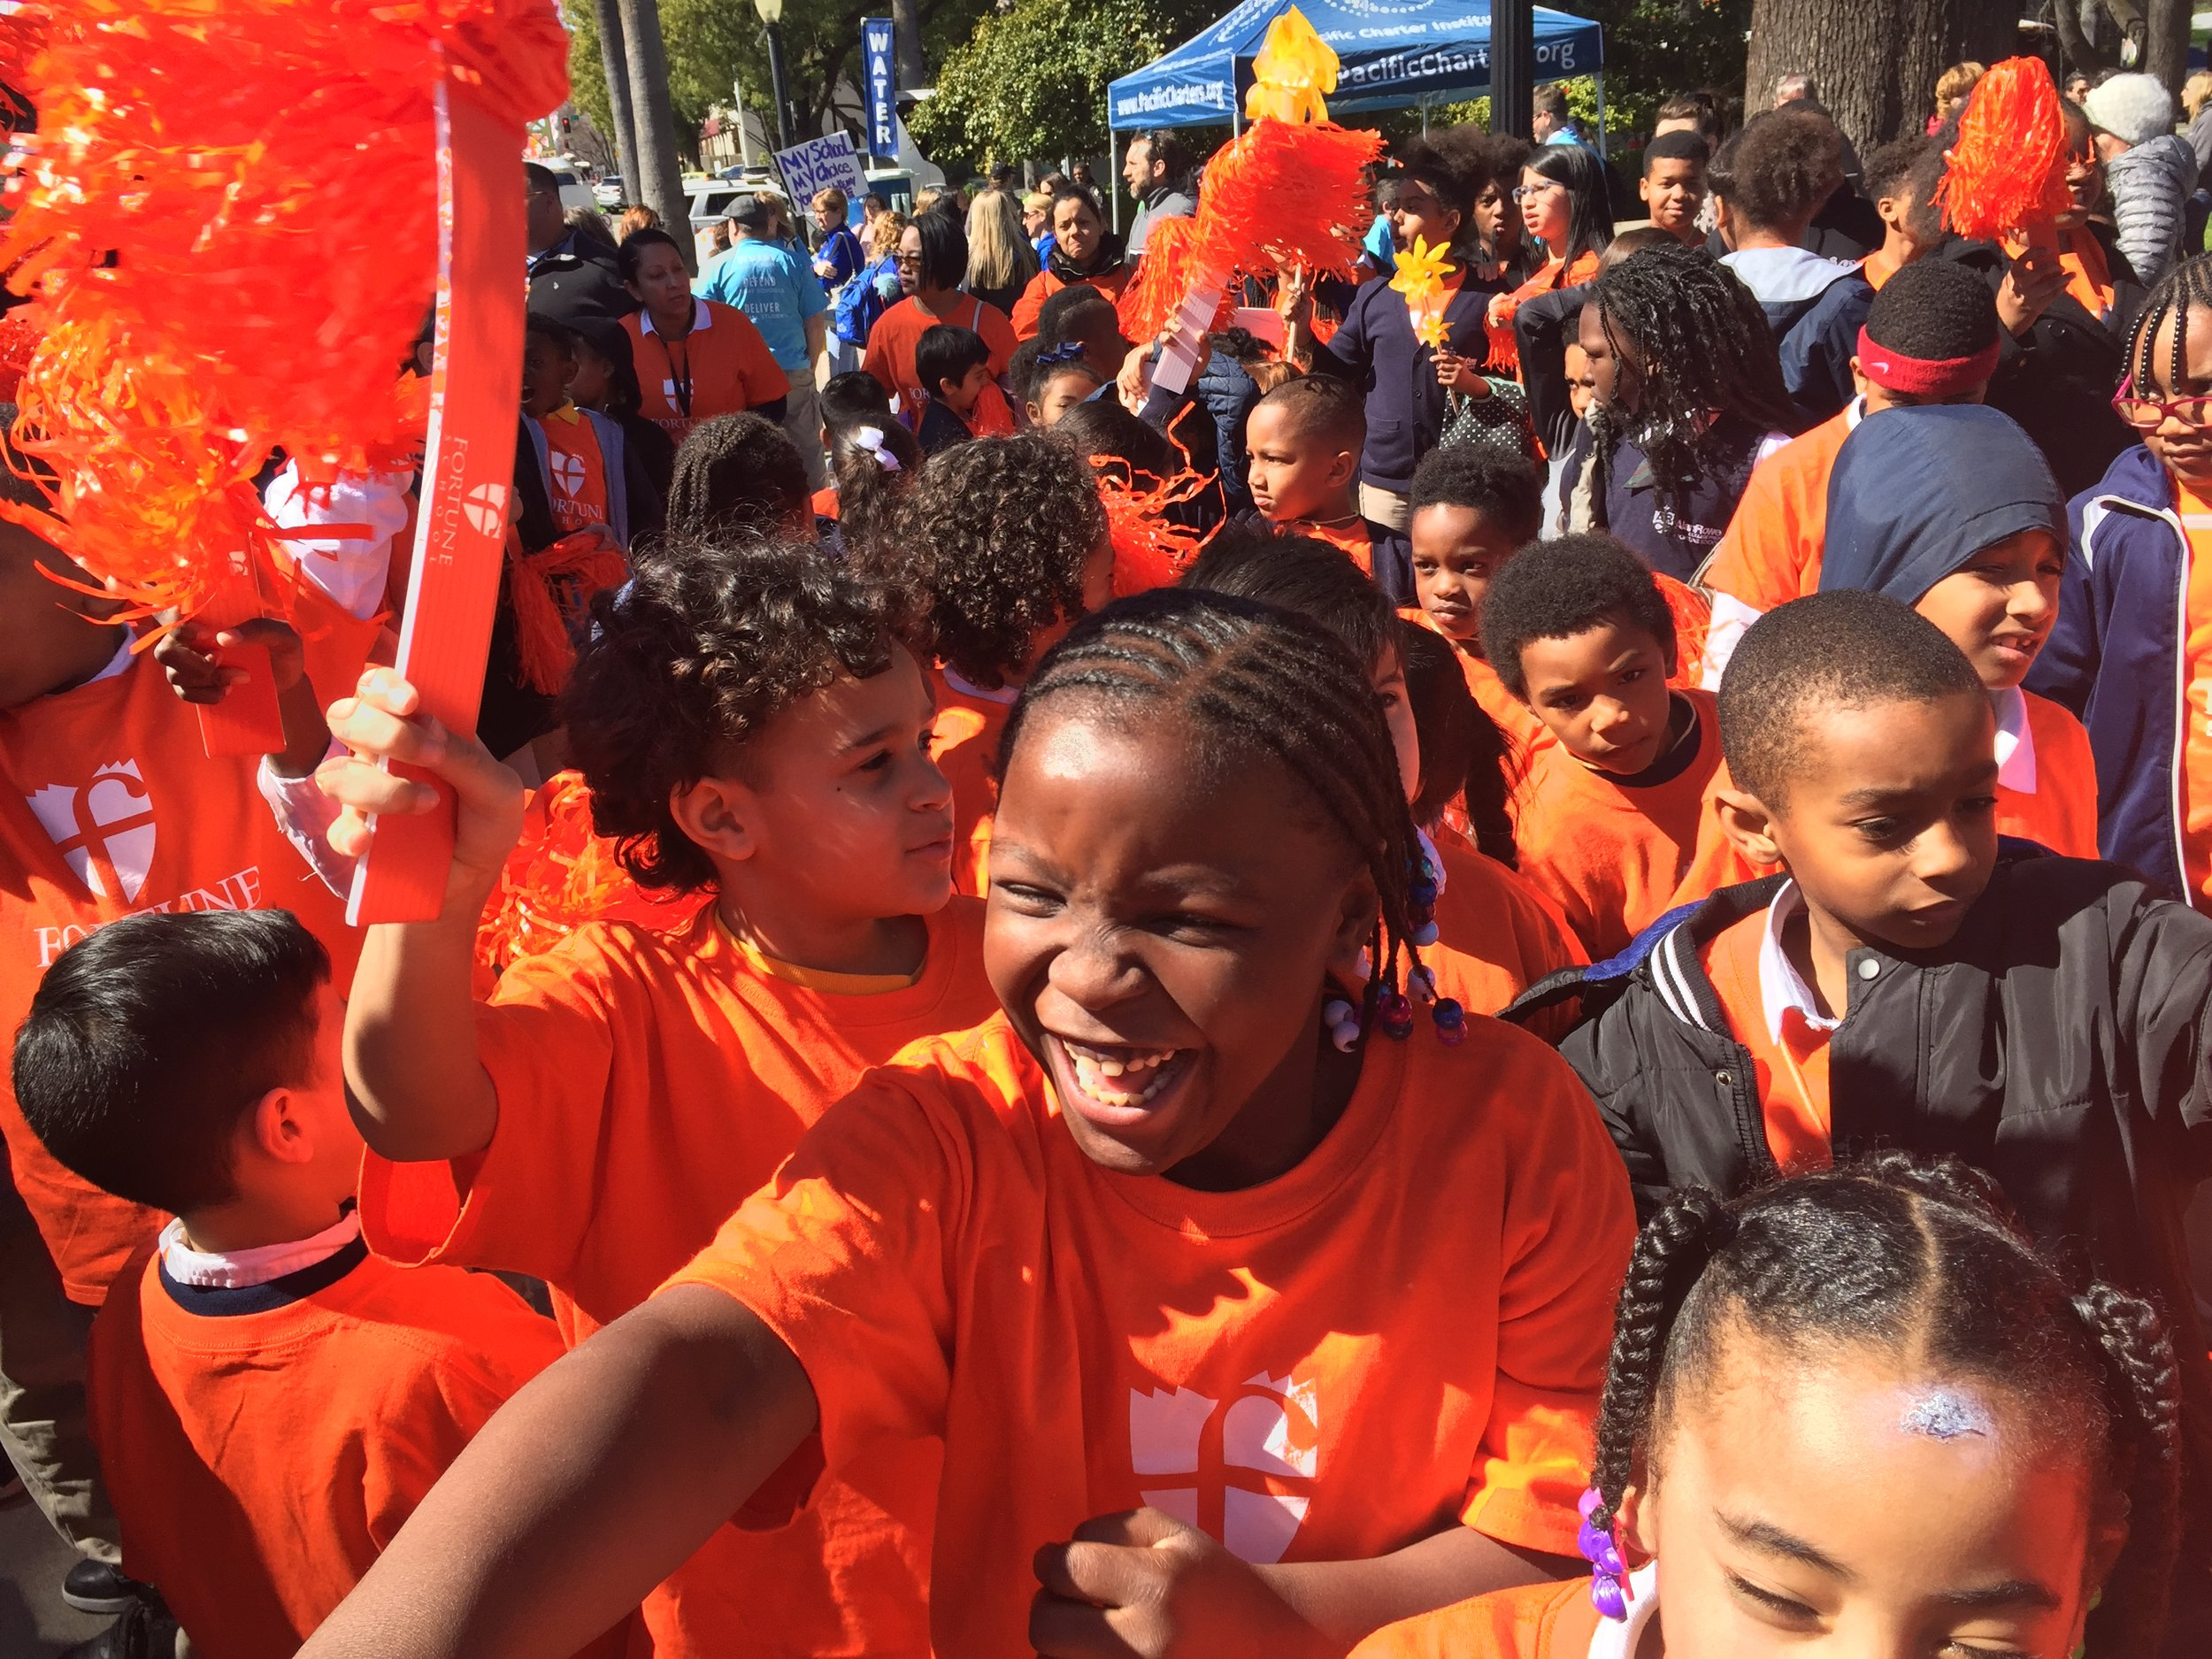 Students from Fortune School rallied in Sacramento to support charter schools in March